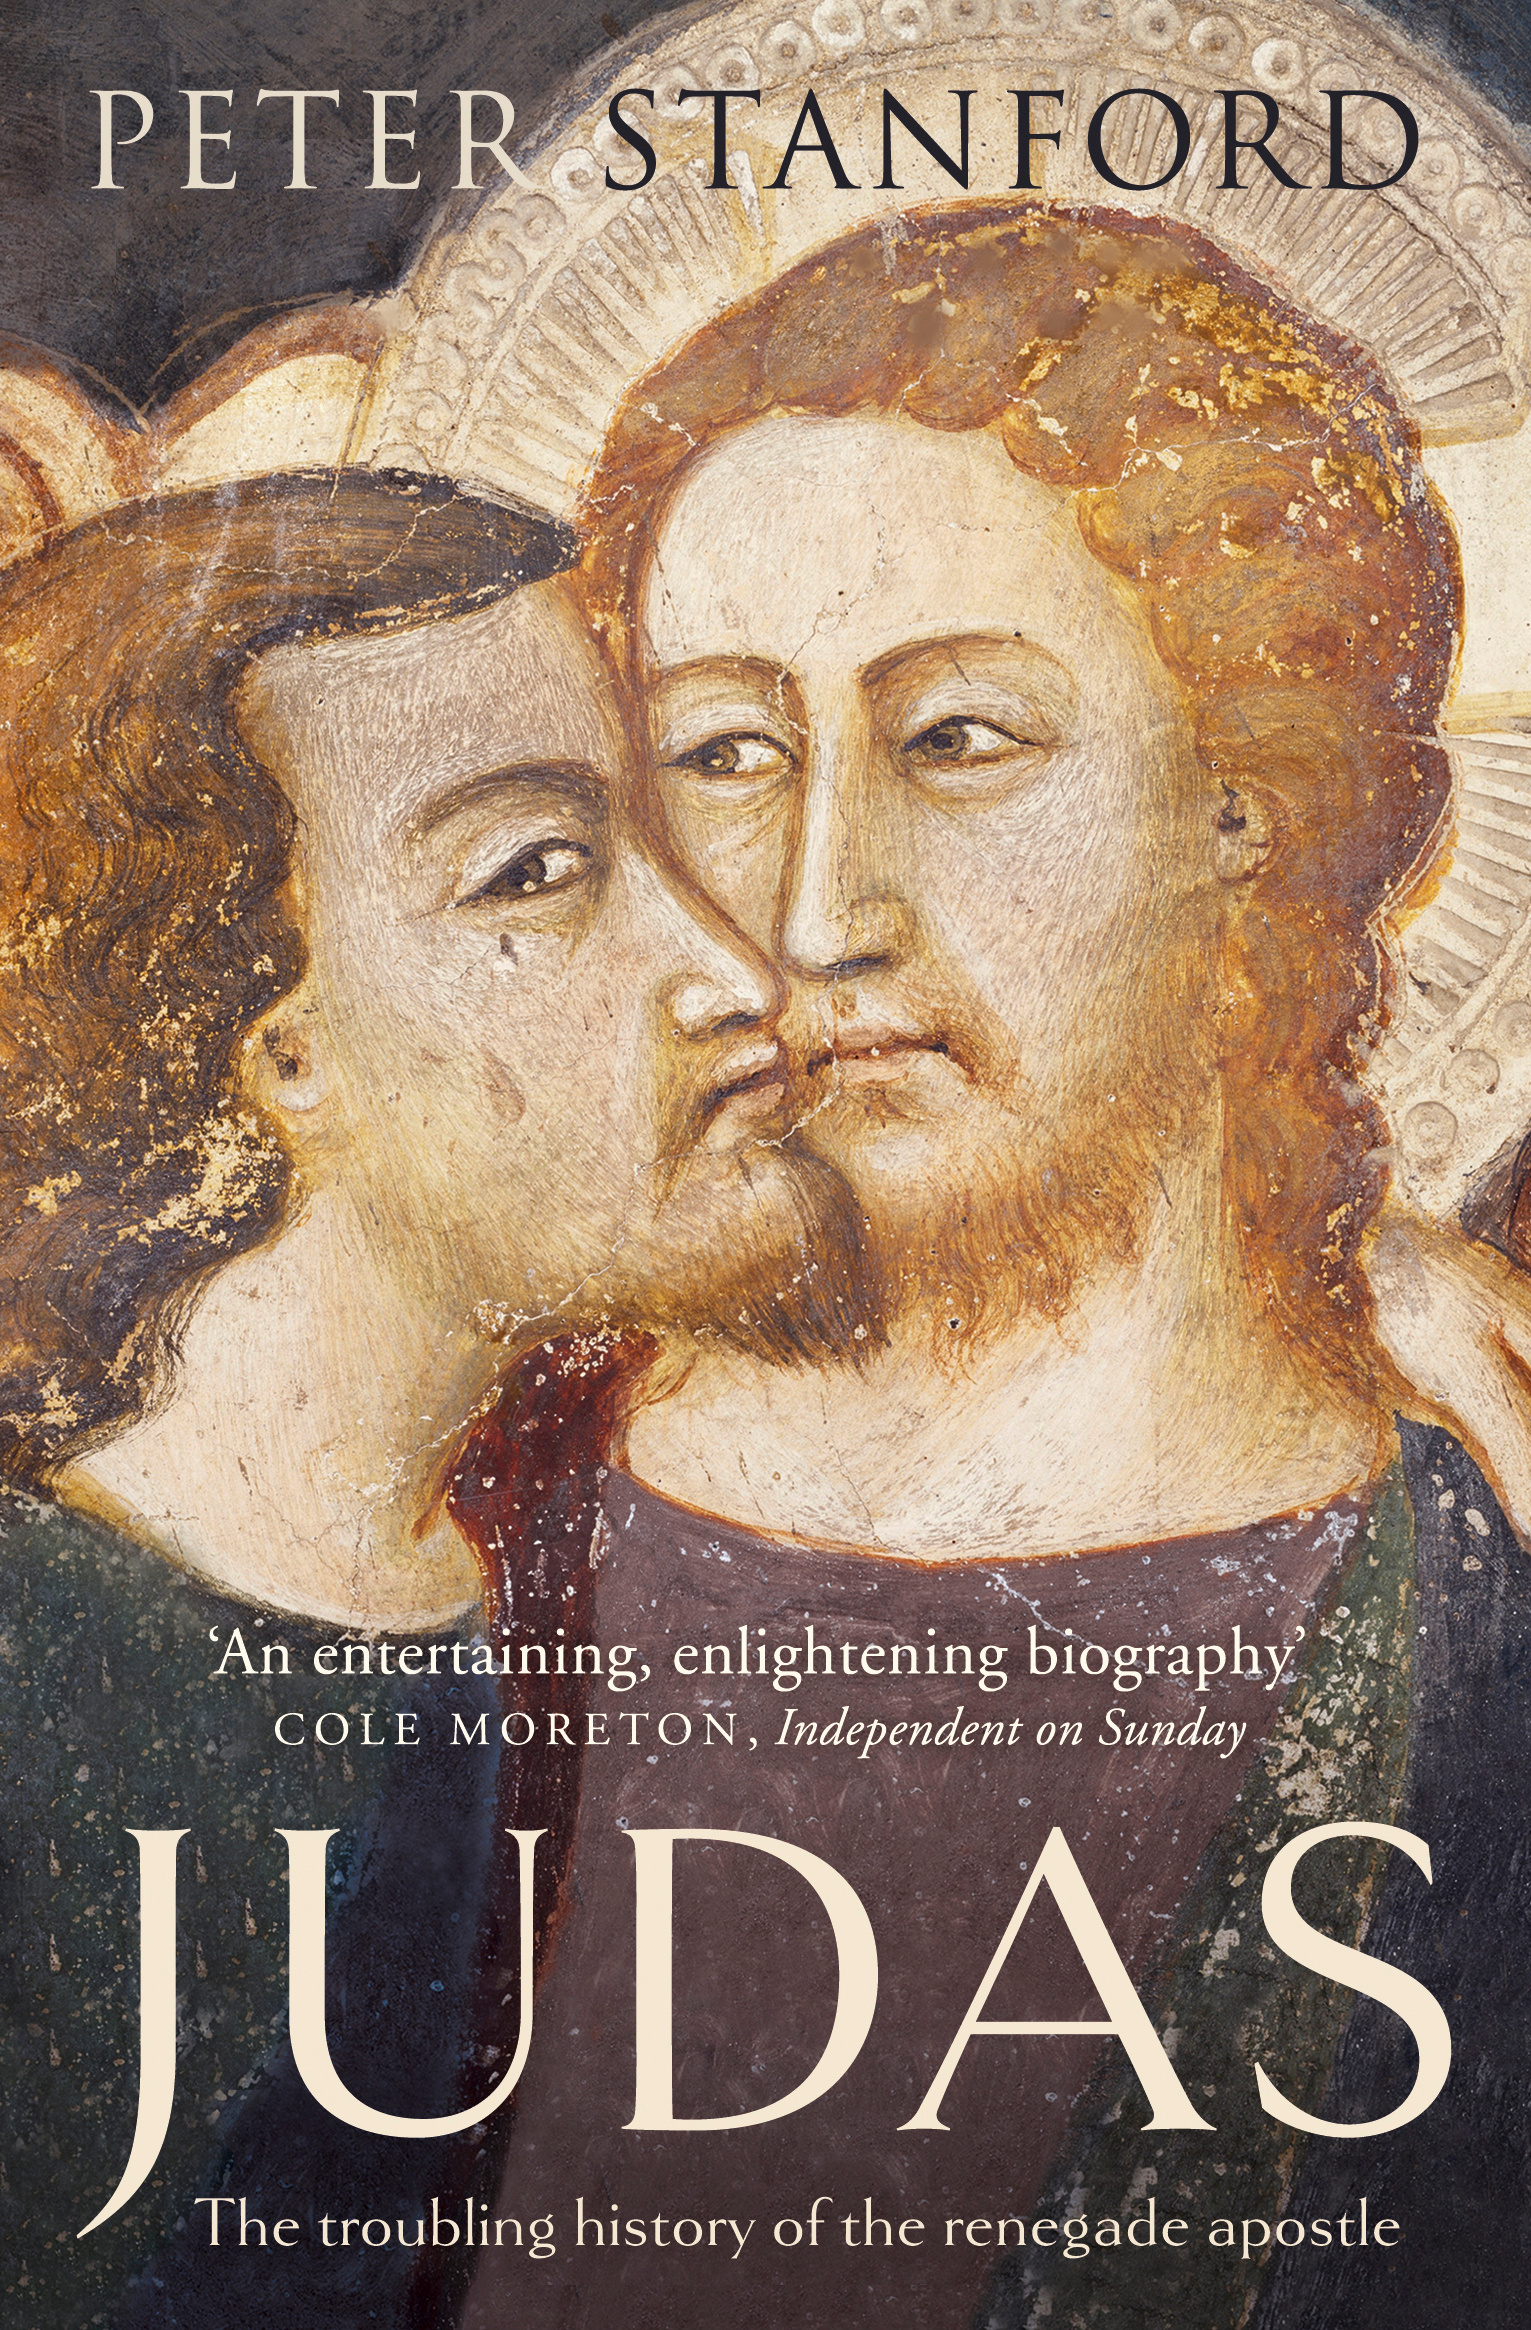 Judas The Troubling History Of The Renegade Apostle By Peter